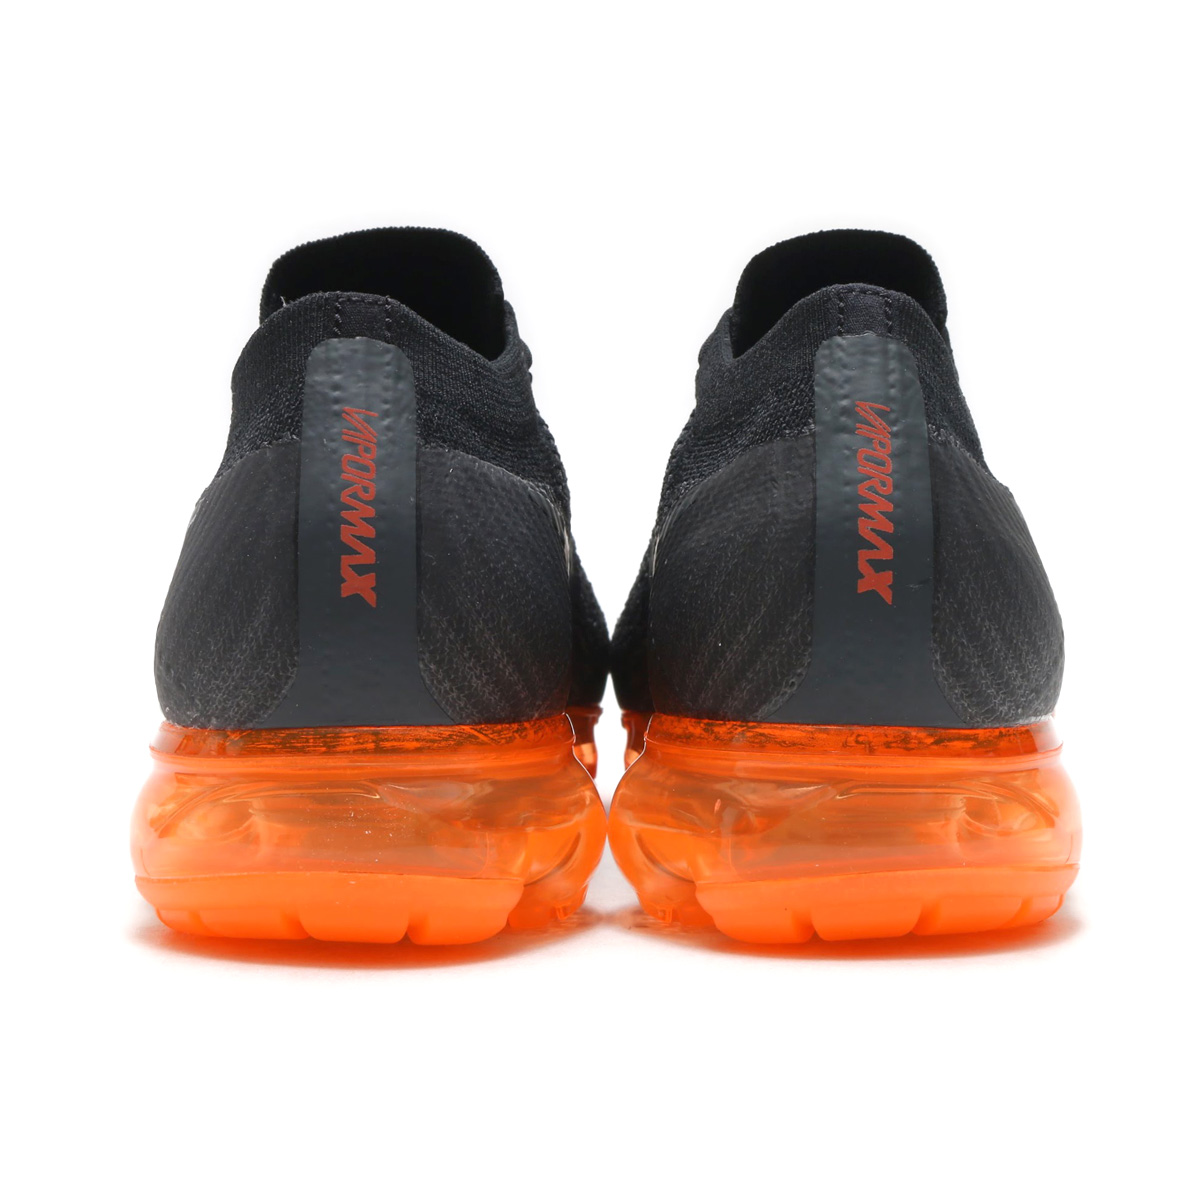 af516dddf20b6 NIKE AIR VAPORMAX FLYKNIT P (Nike air vapor max fried food knit P) ( ANTHRACITE ANTHRACITE-BLACK-RUSH ORANGE) 18SP-S